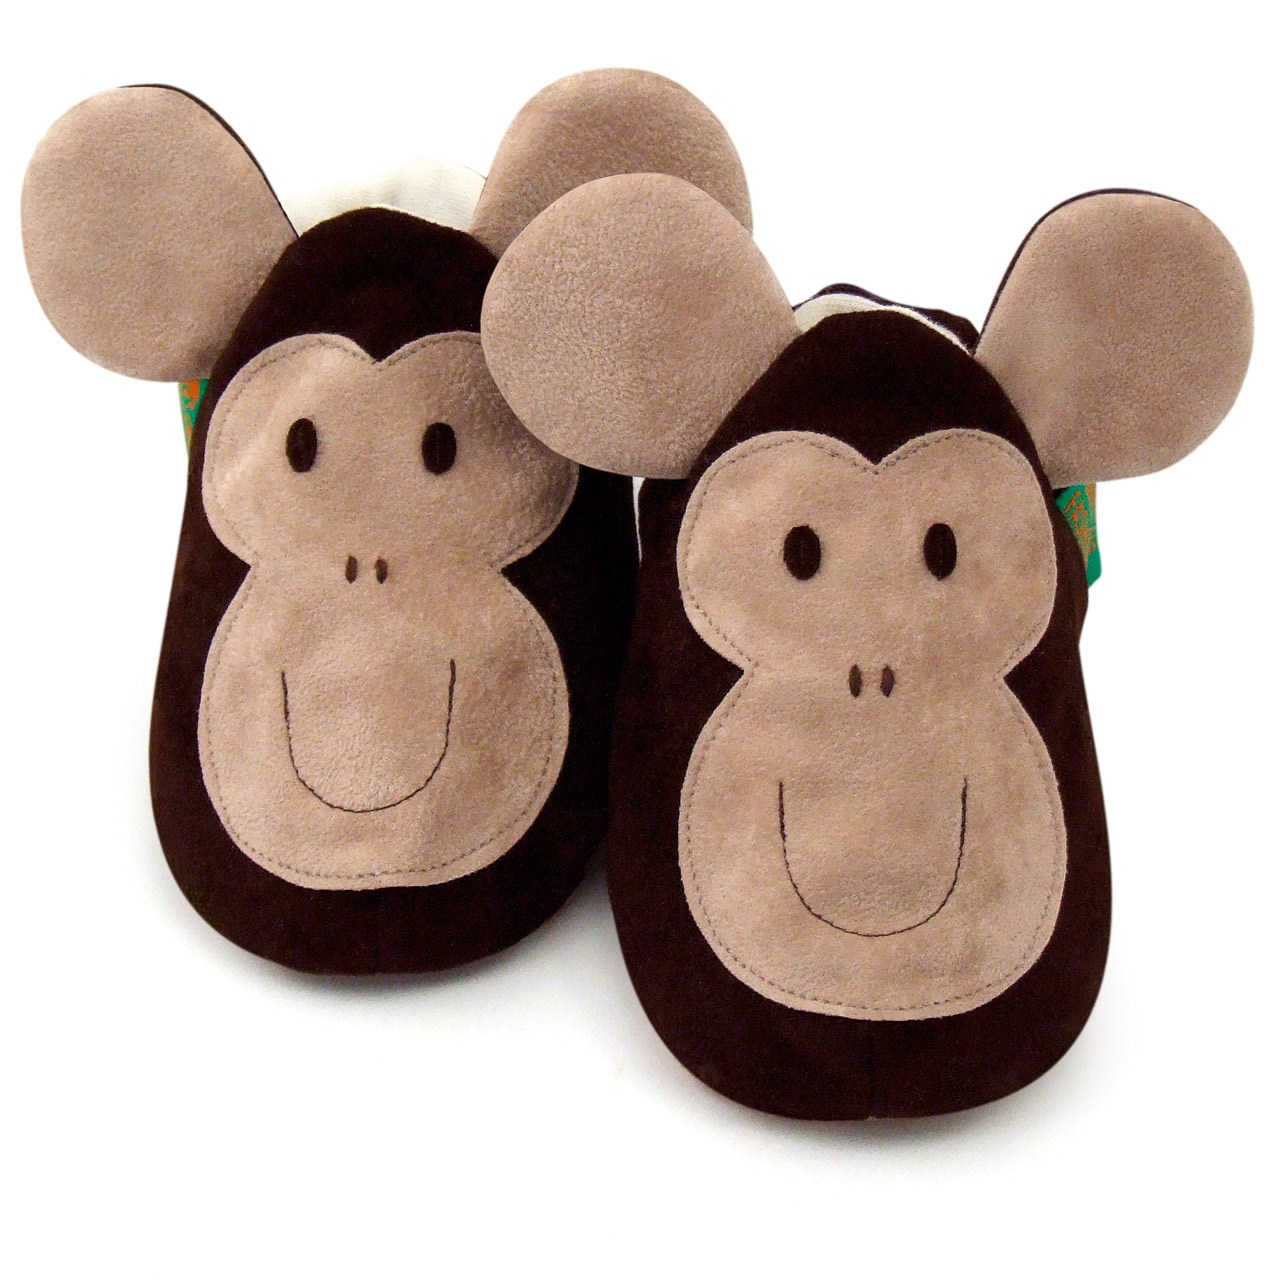 Soft Baby Shoes - Monkey